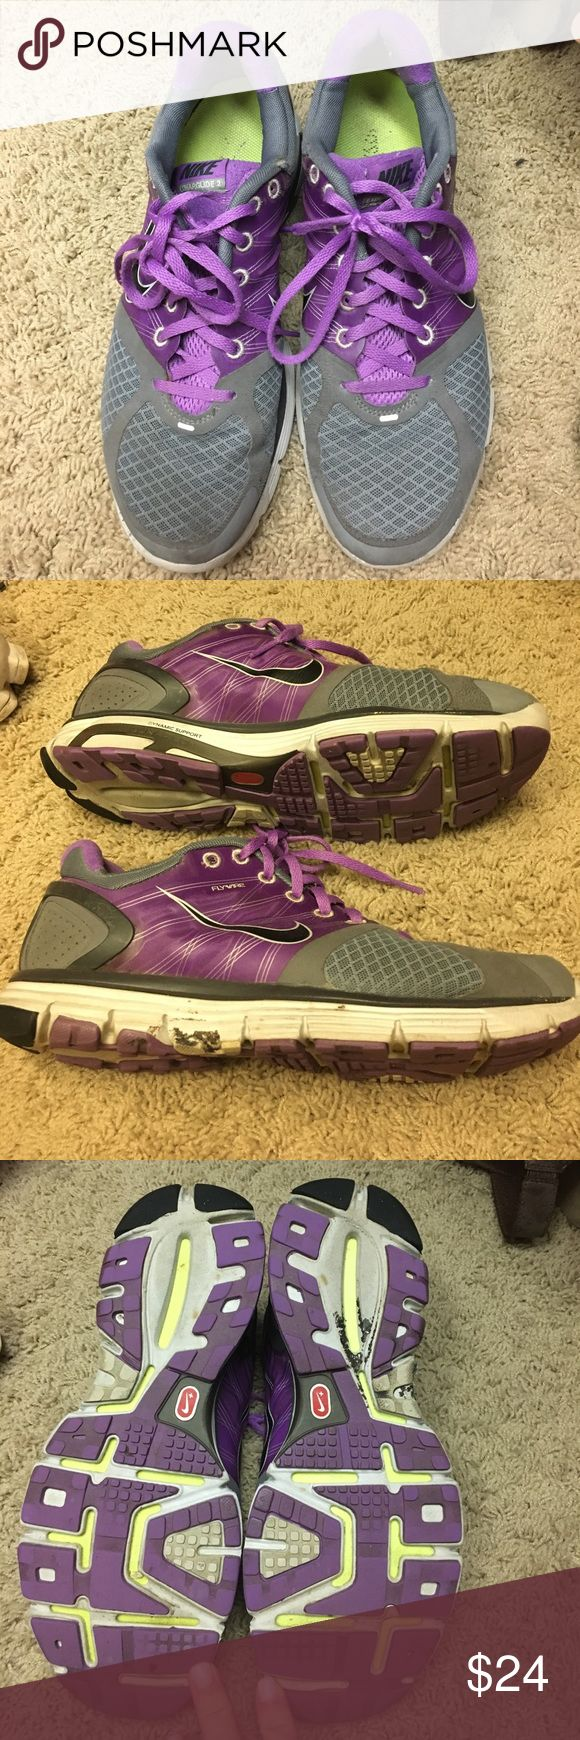 Nike lunarglide 2 GUC size 9.. super comfy for walking Nike Shoes Sneakers